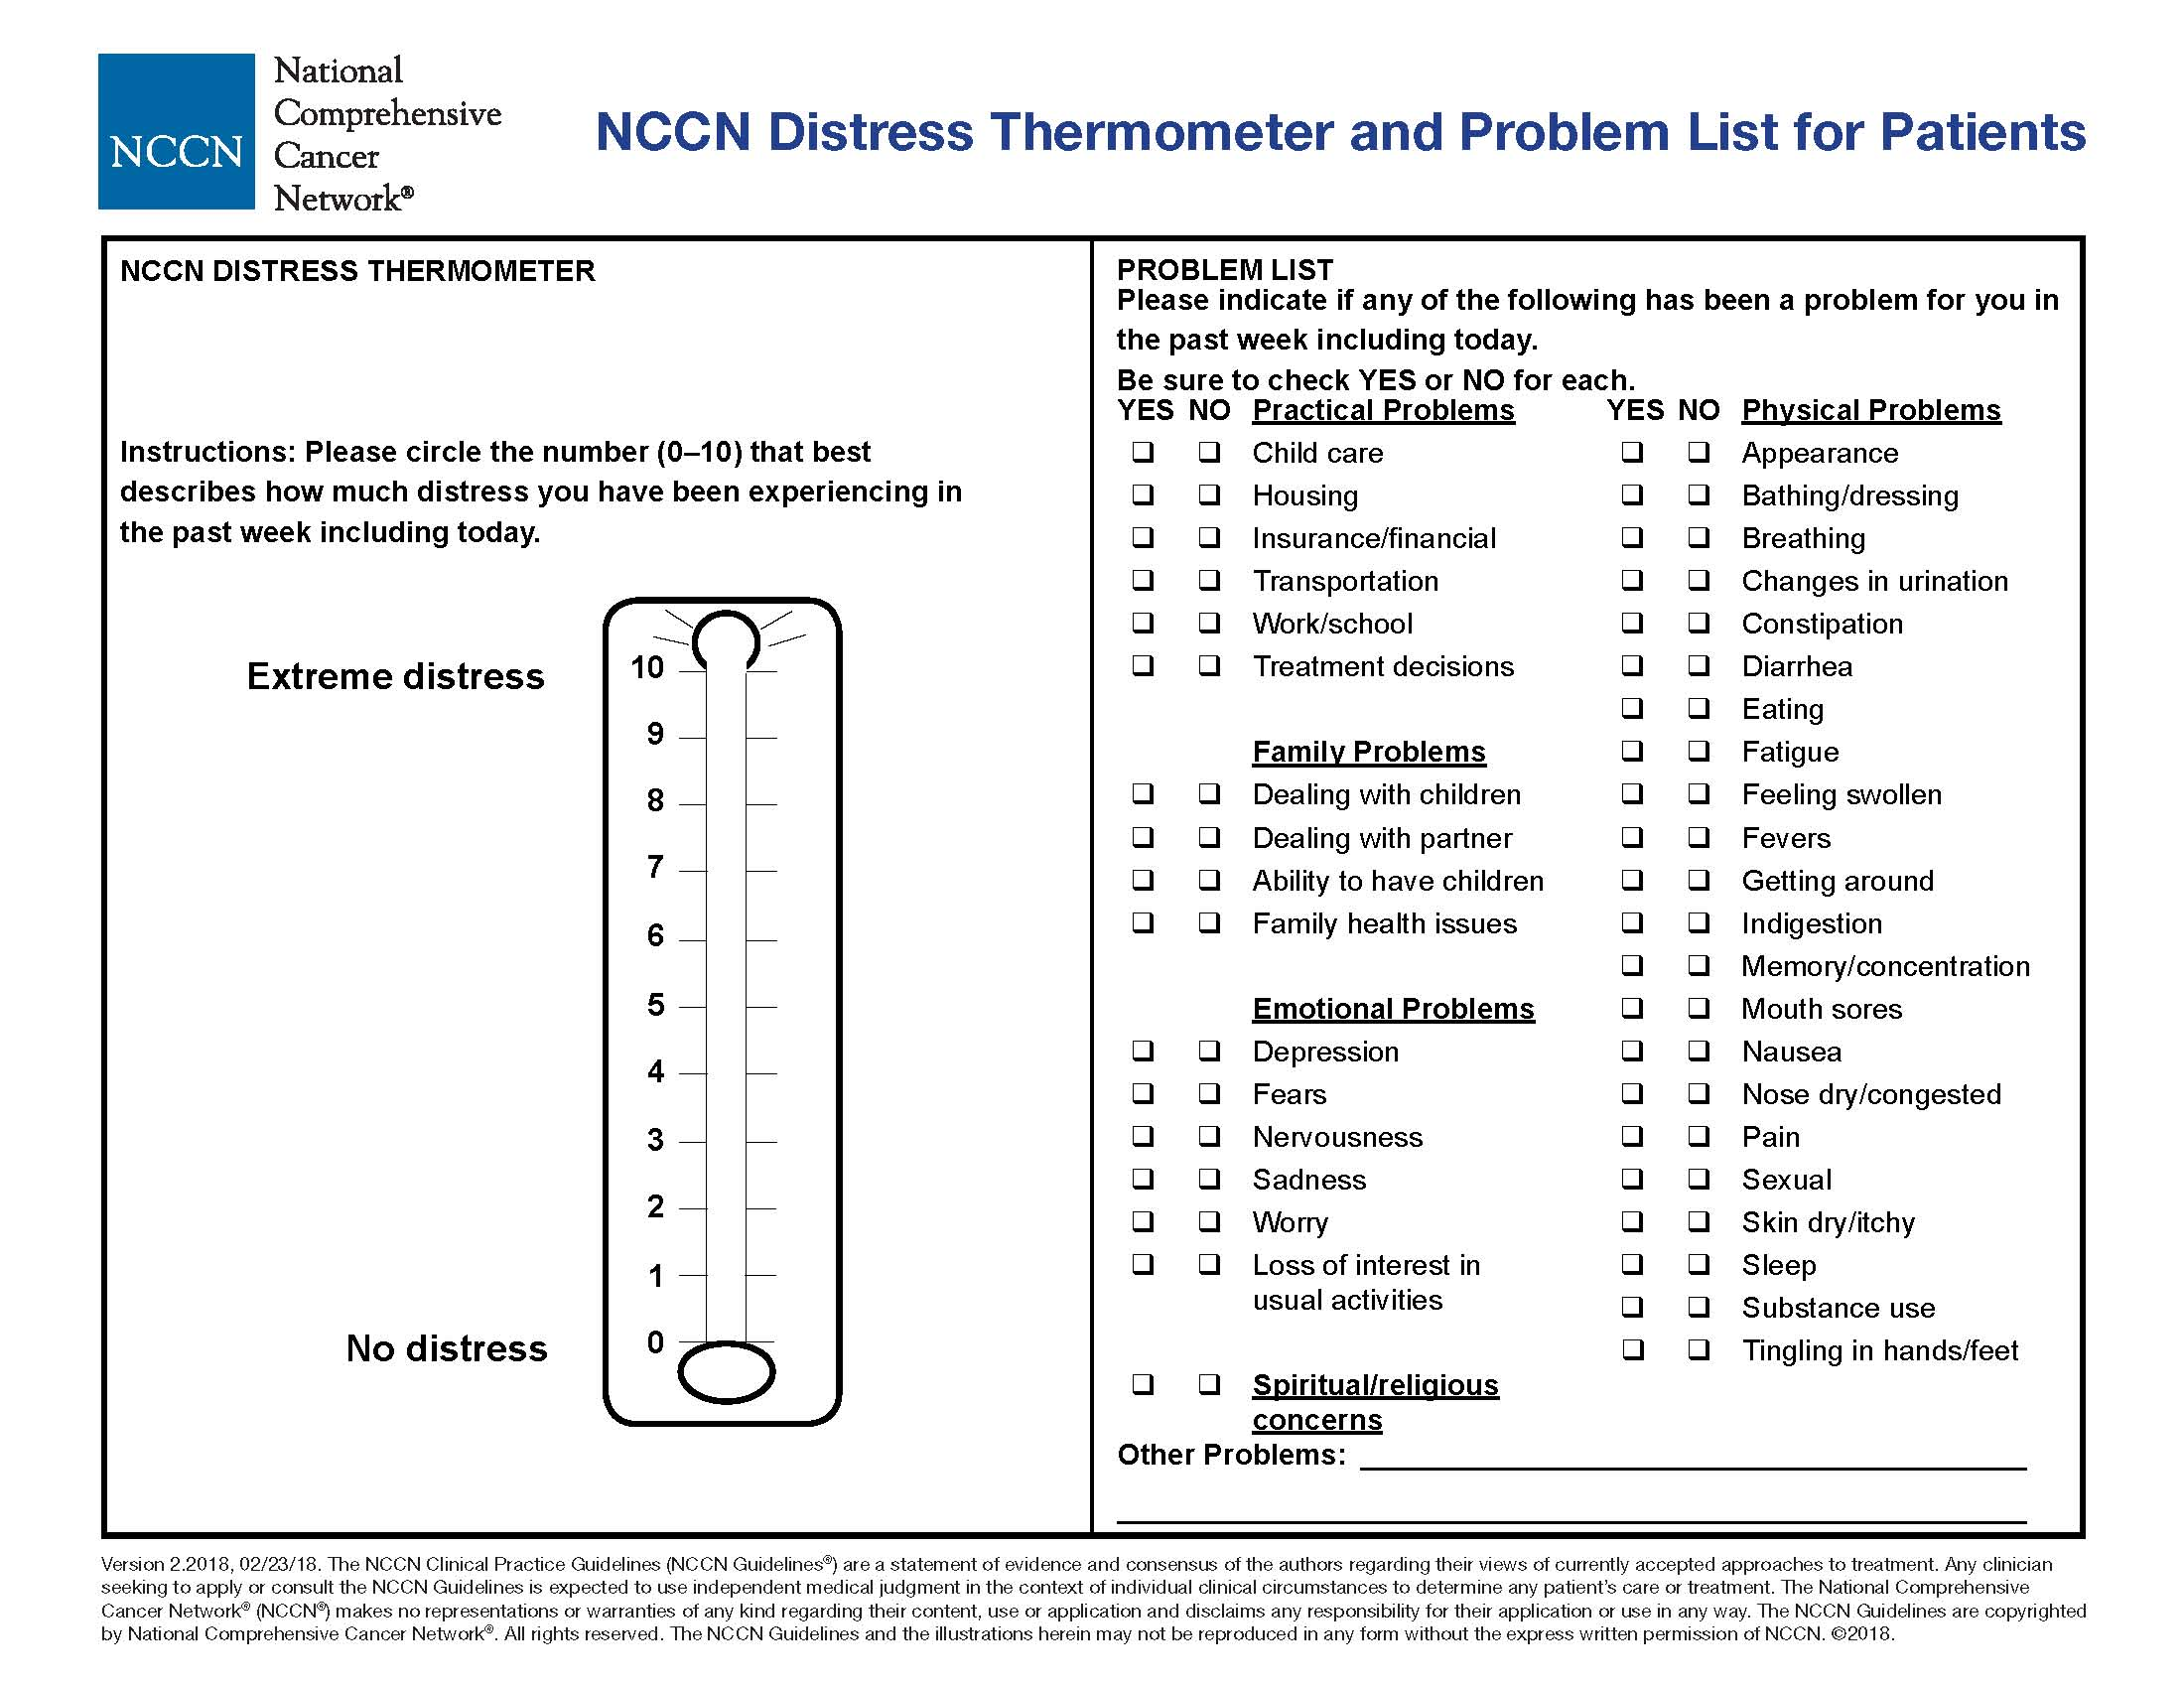 nccn_distress_thermometer-4